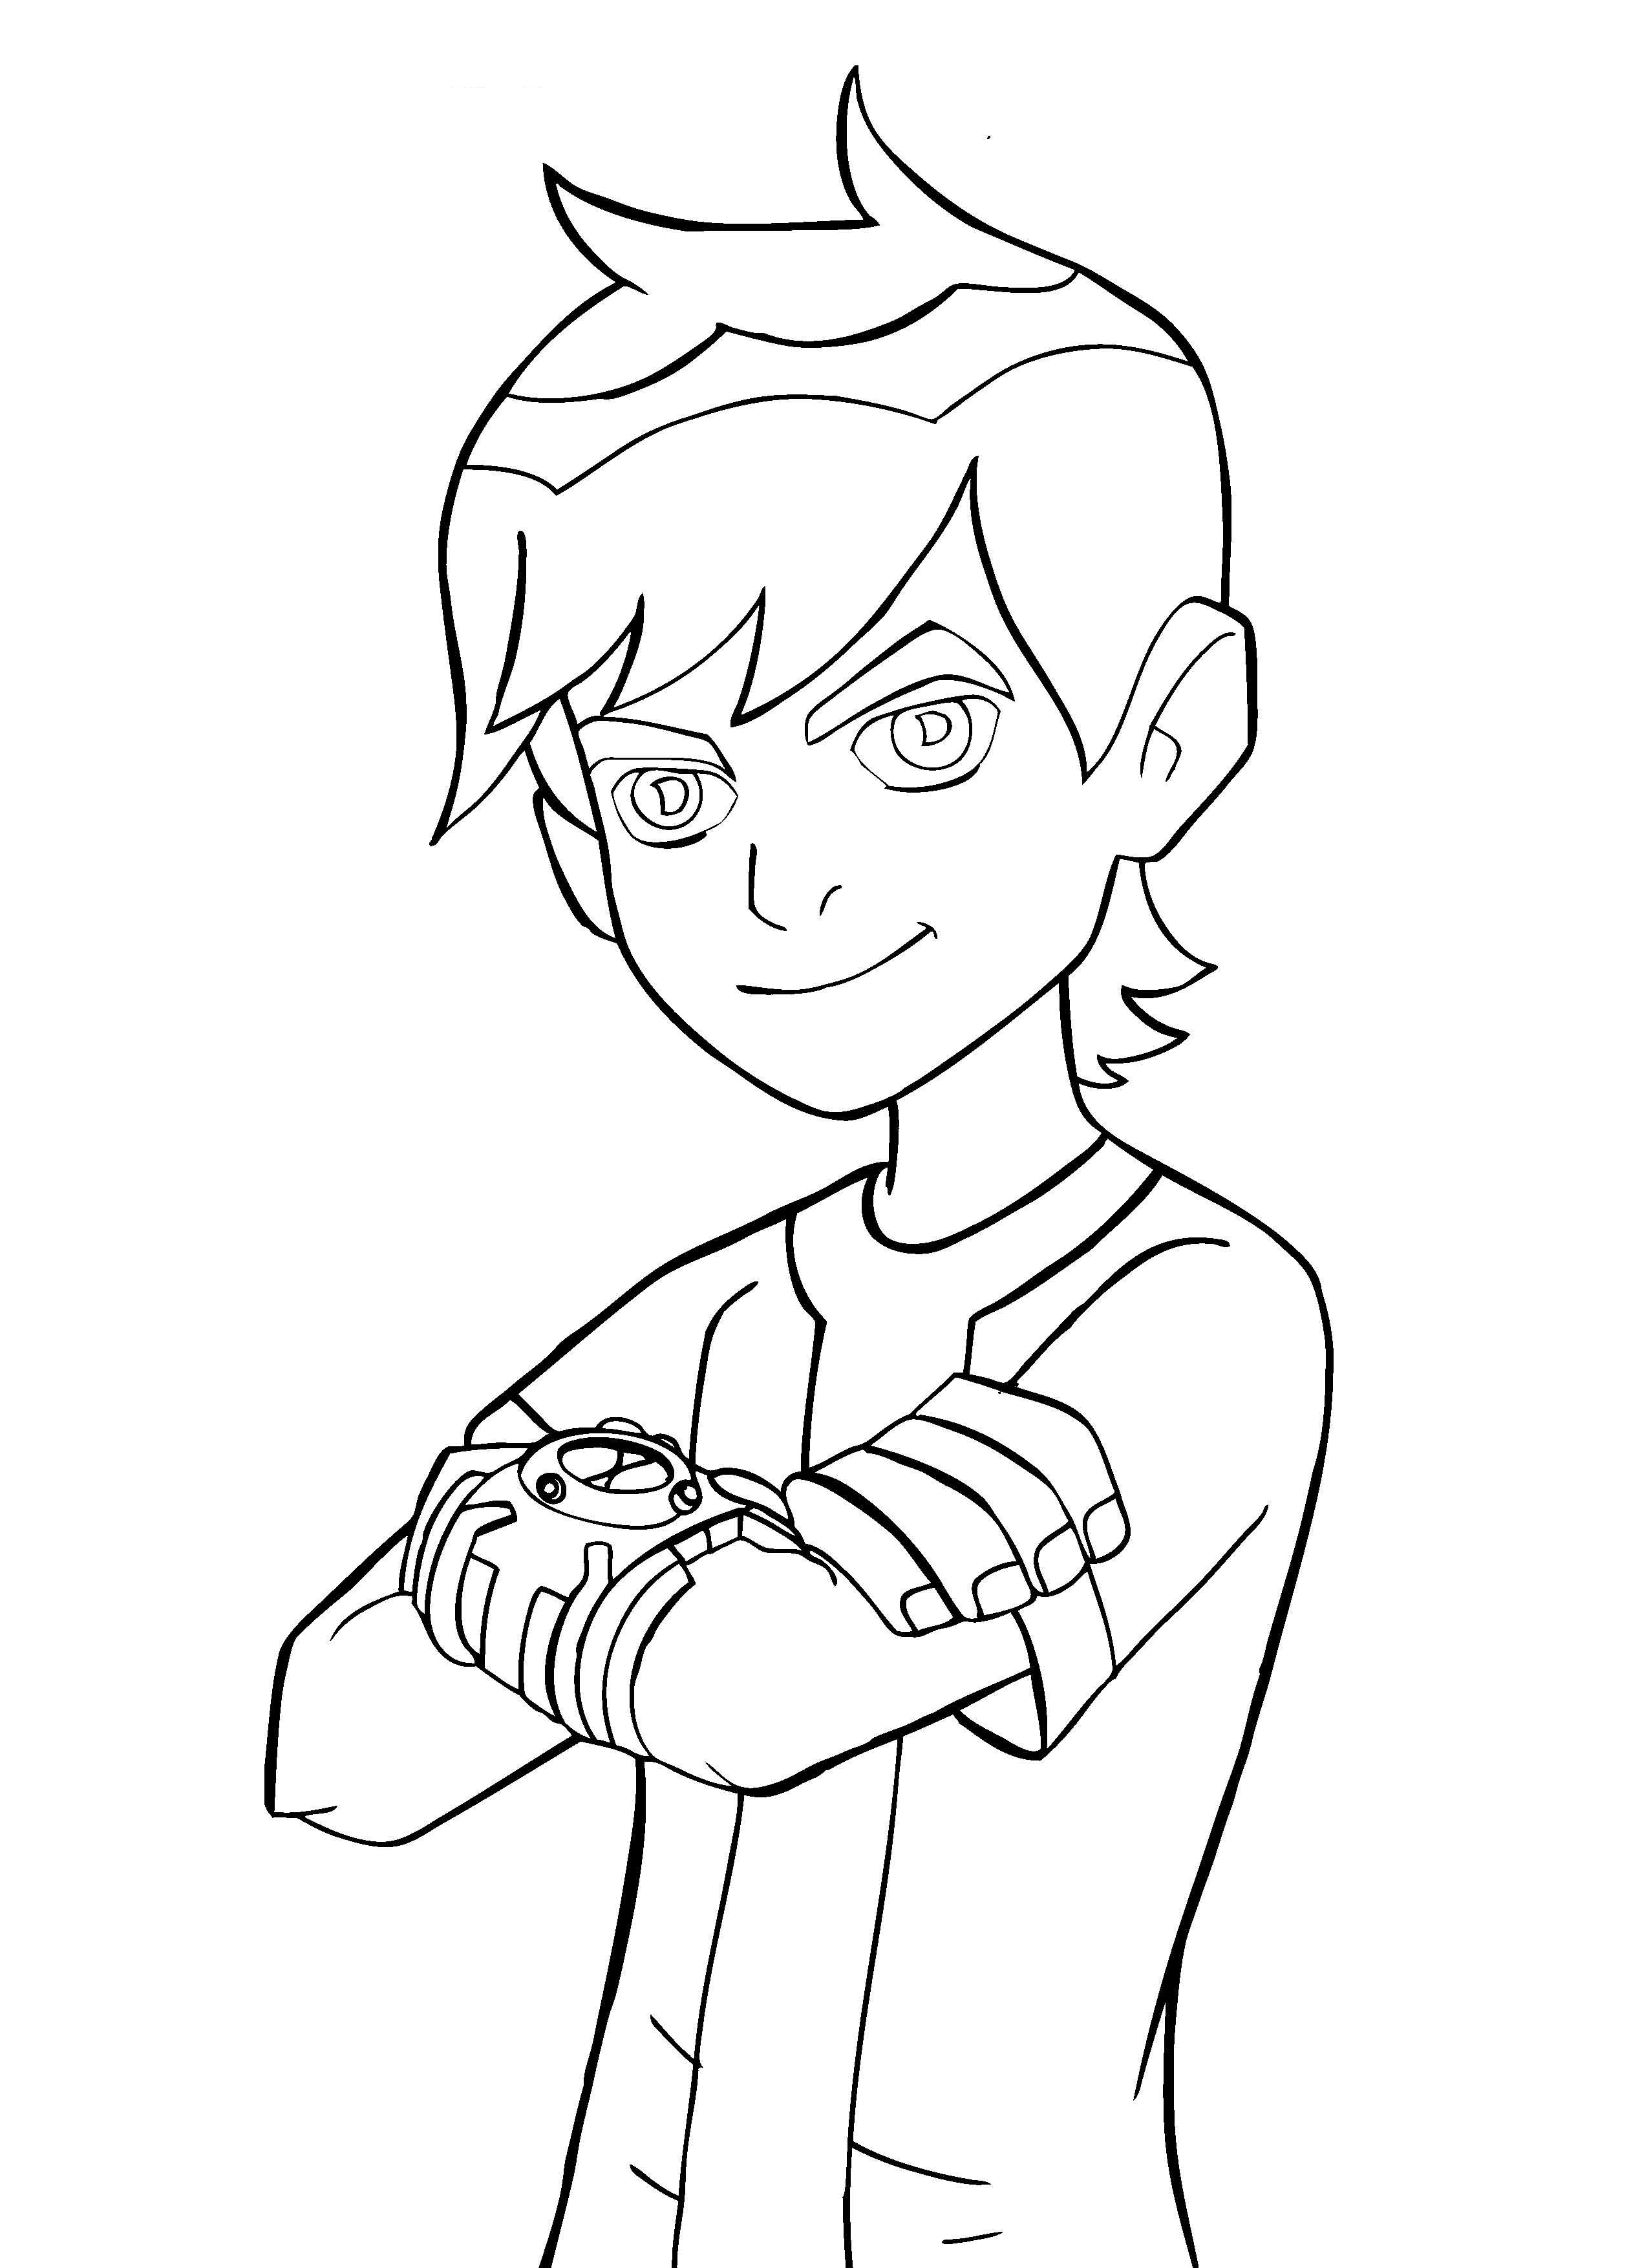 ben 10 coloring images ben 10 coloring pages ben coloring 10 images